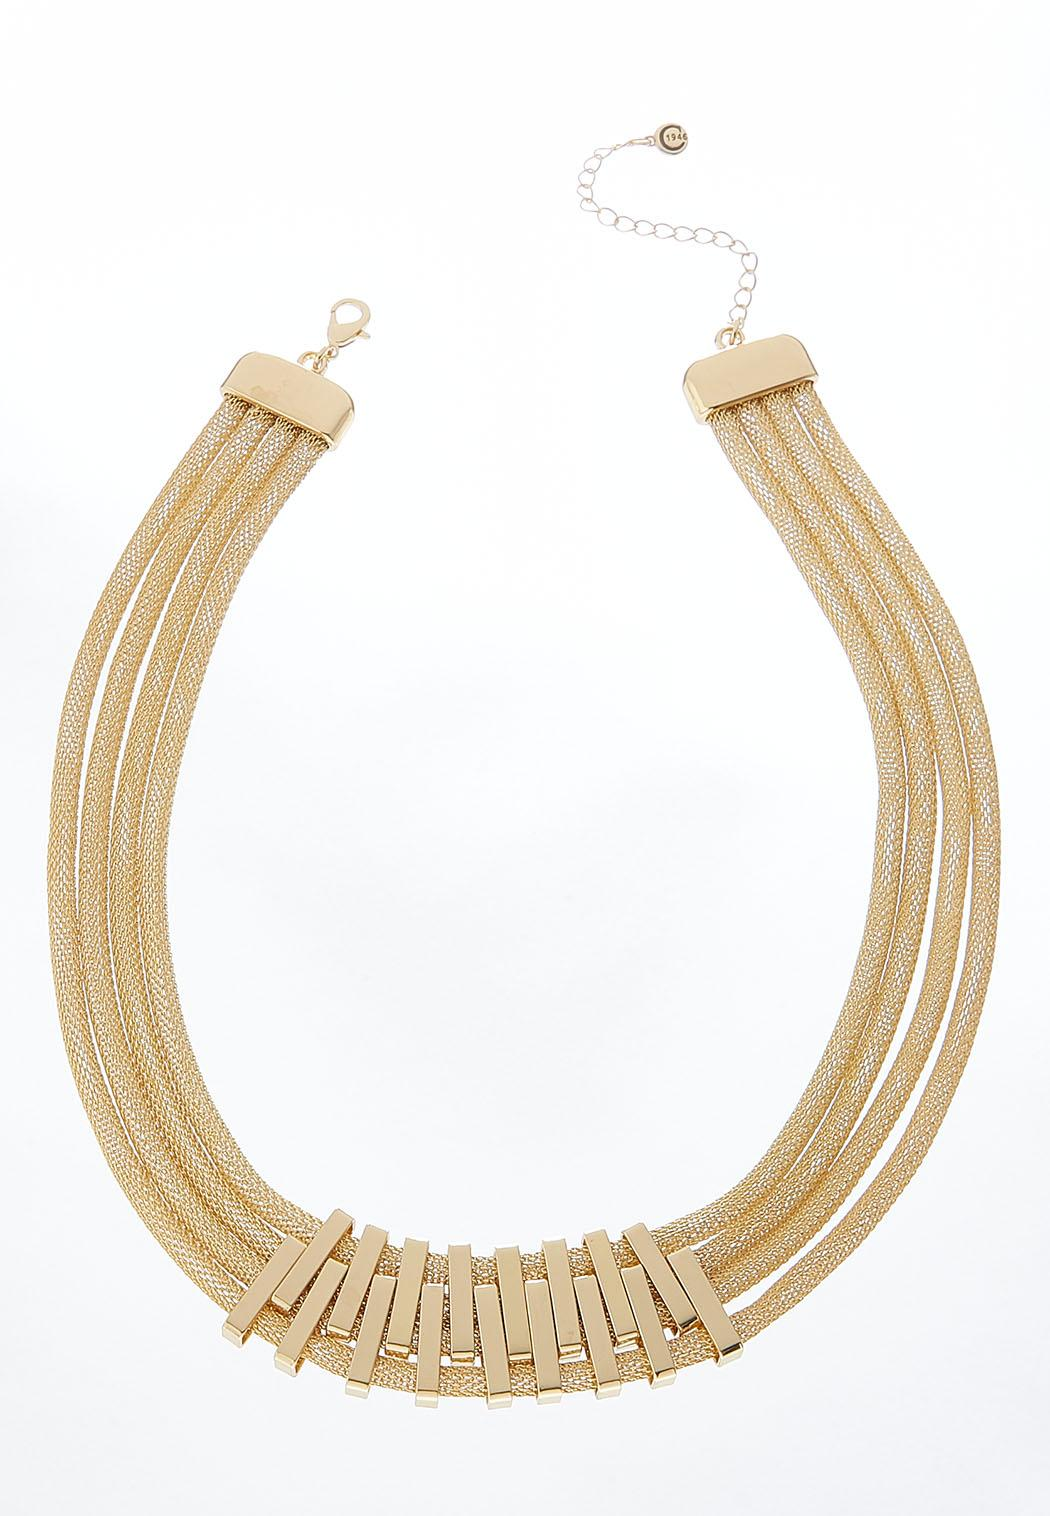 Gold Layered Mesh Necklace